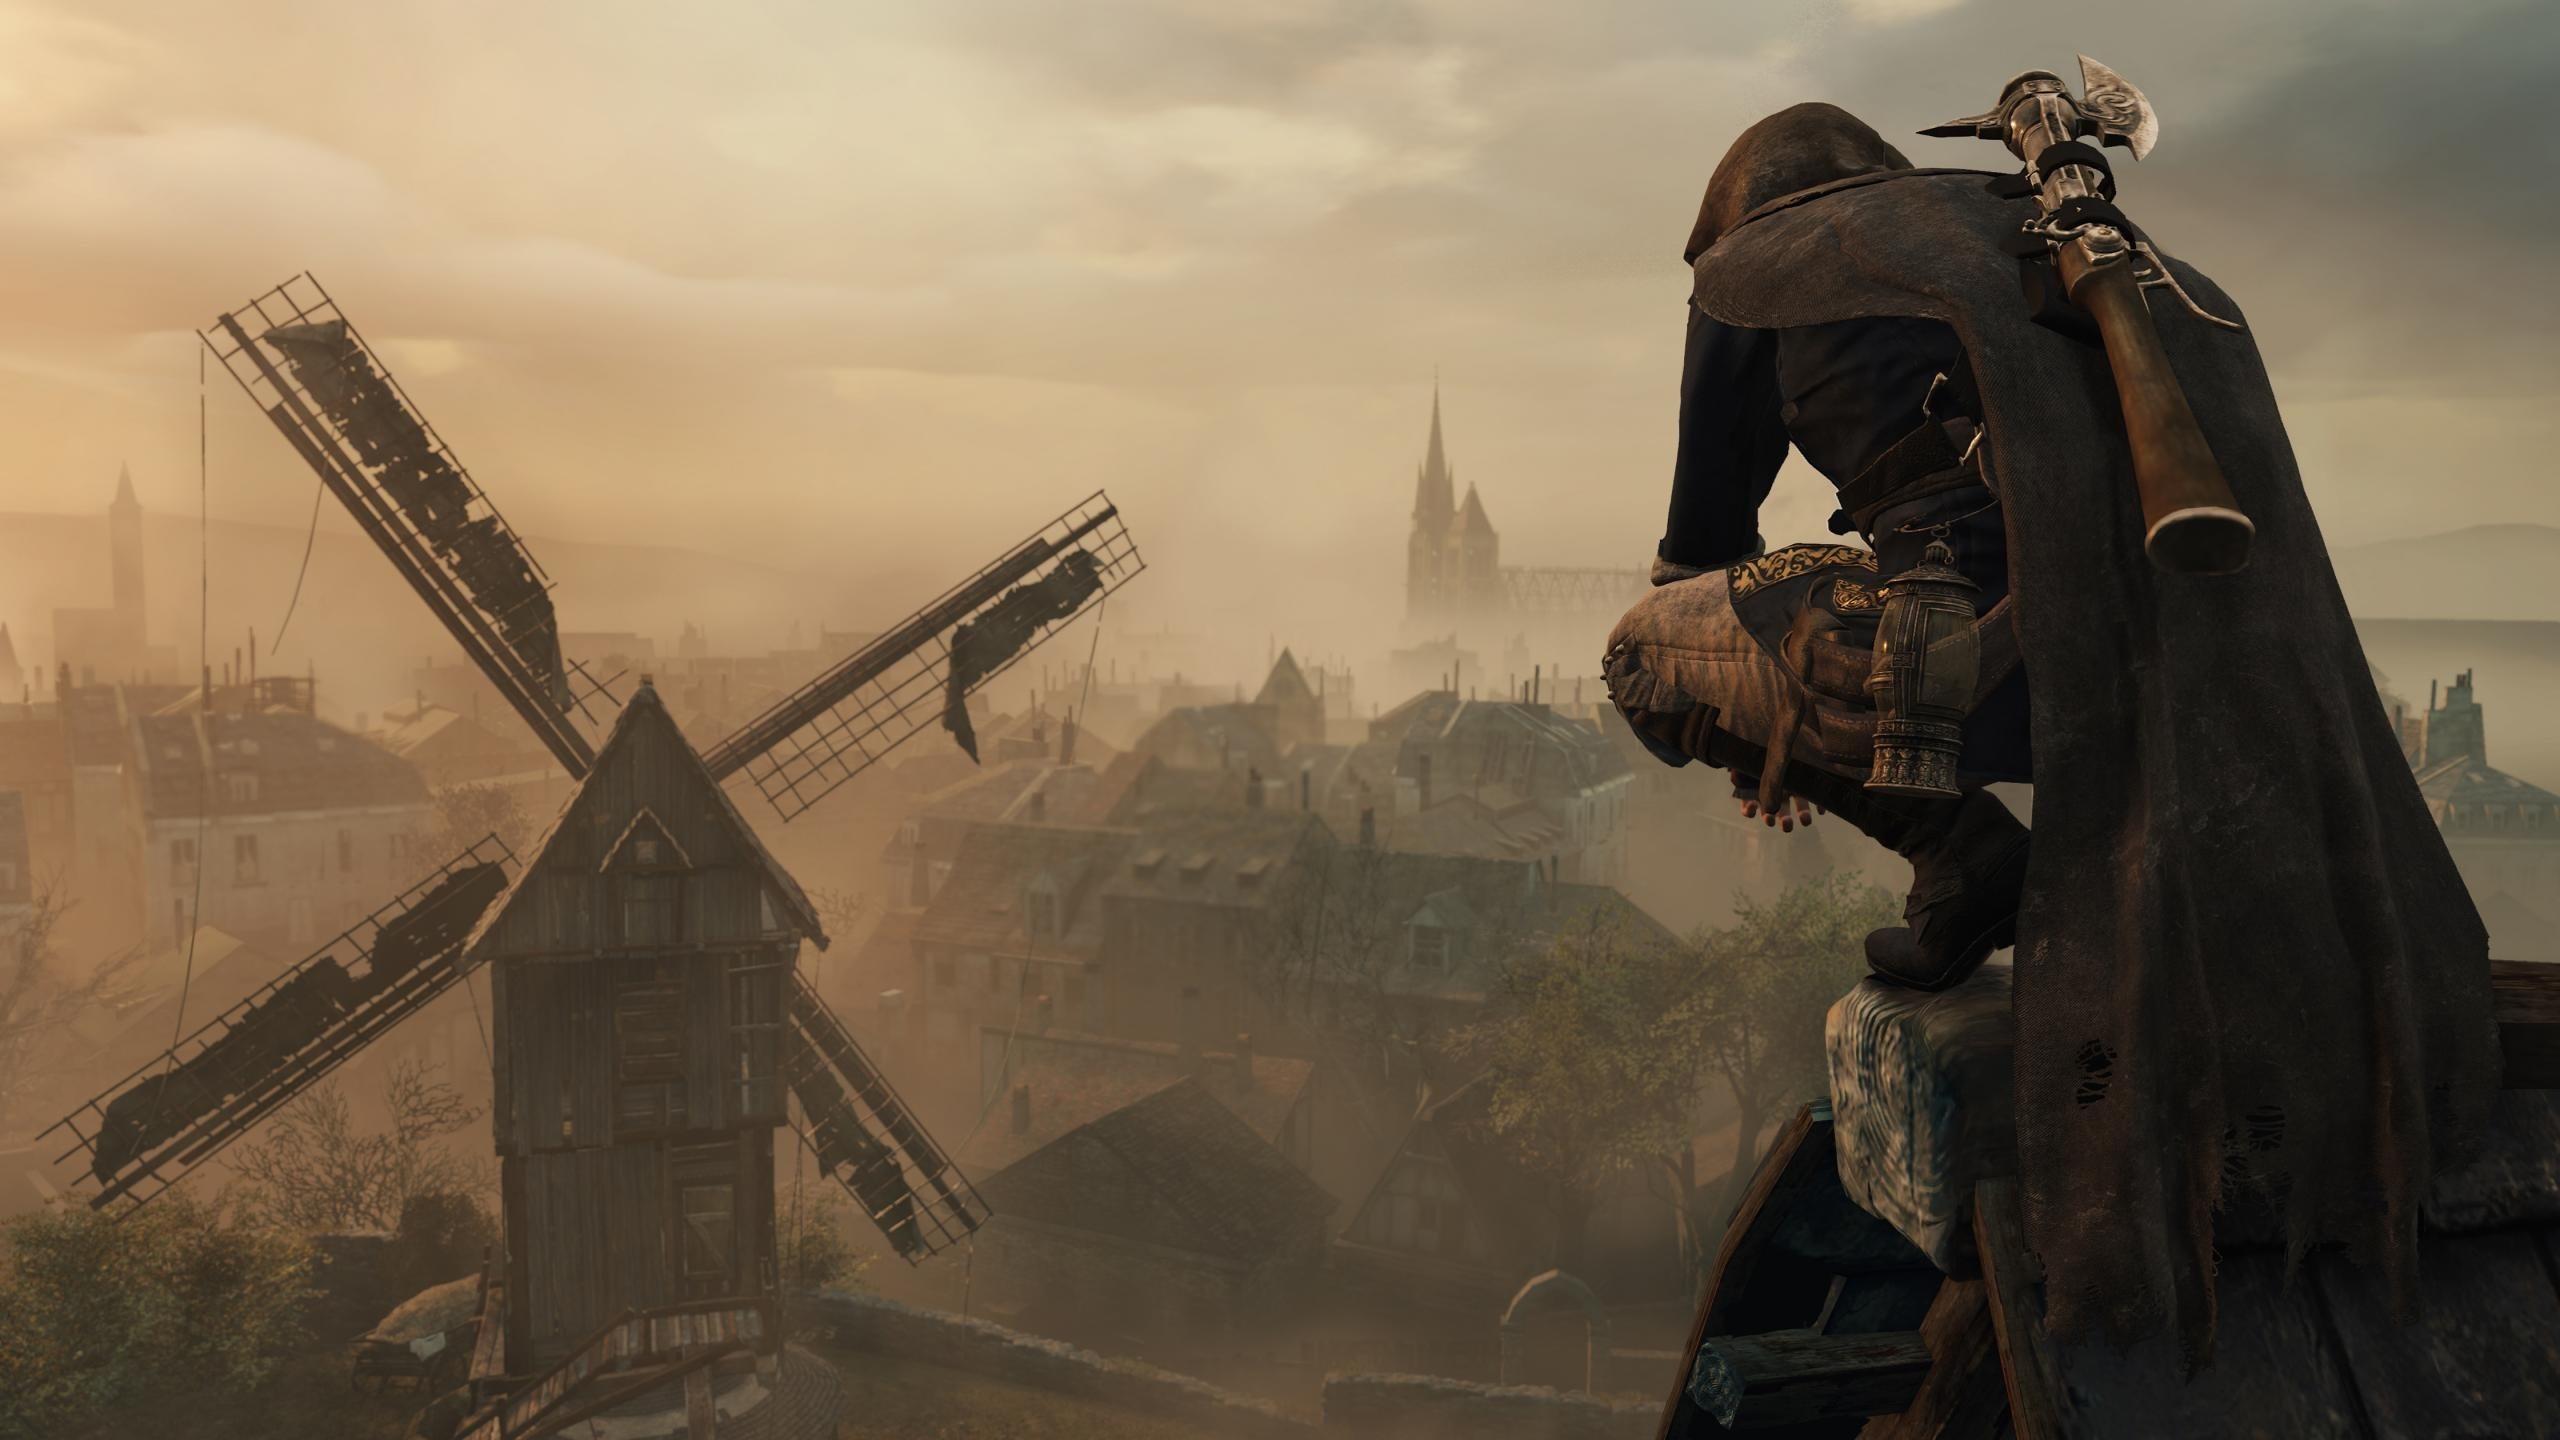 Awesome Assassin's Creed: Unity free wallpaper ID:229469 for hd 2560x1440 desktop